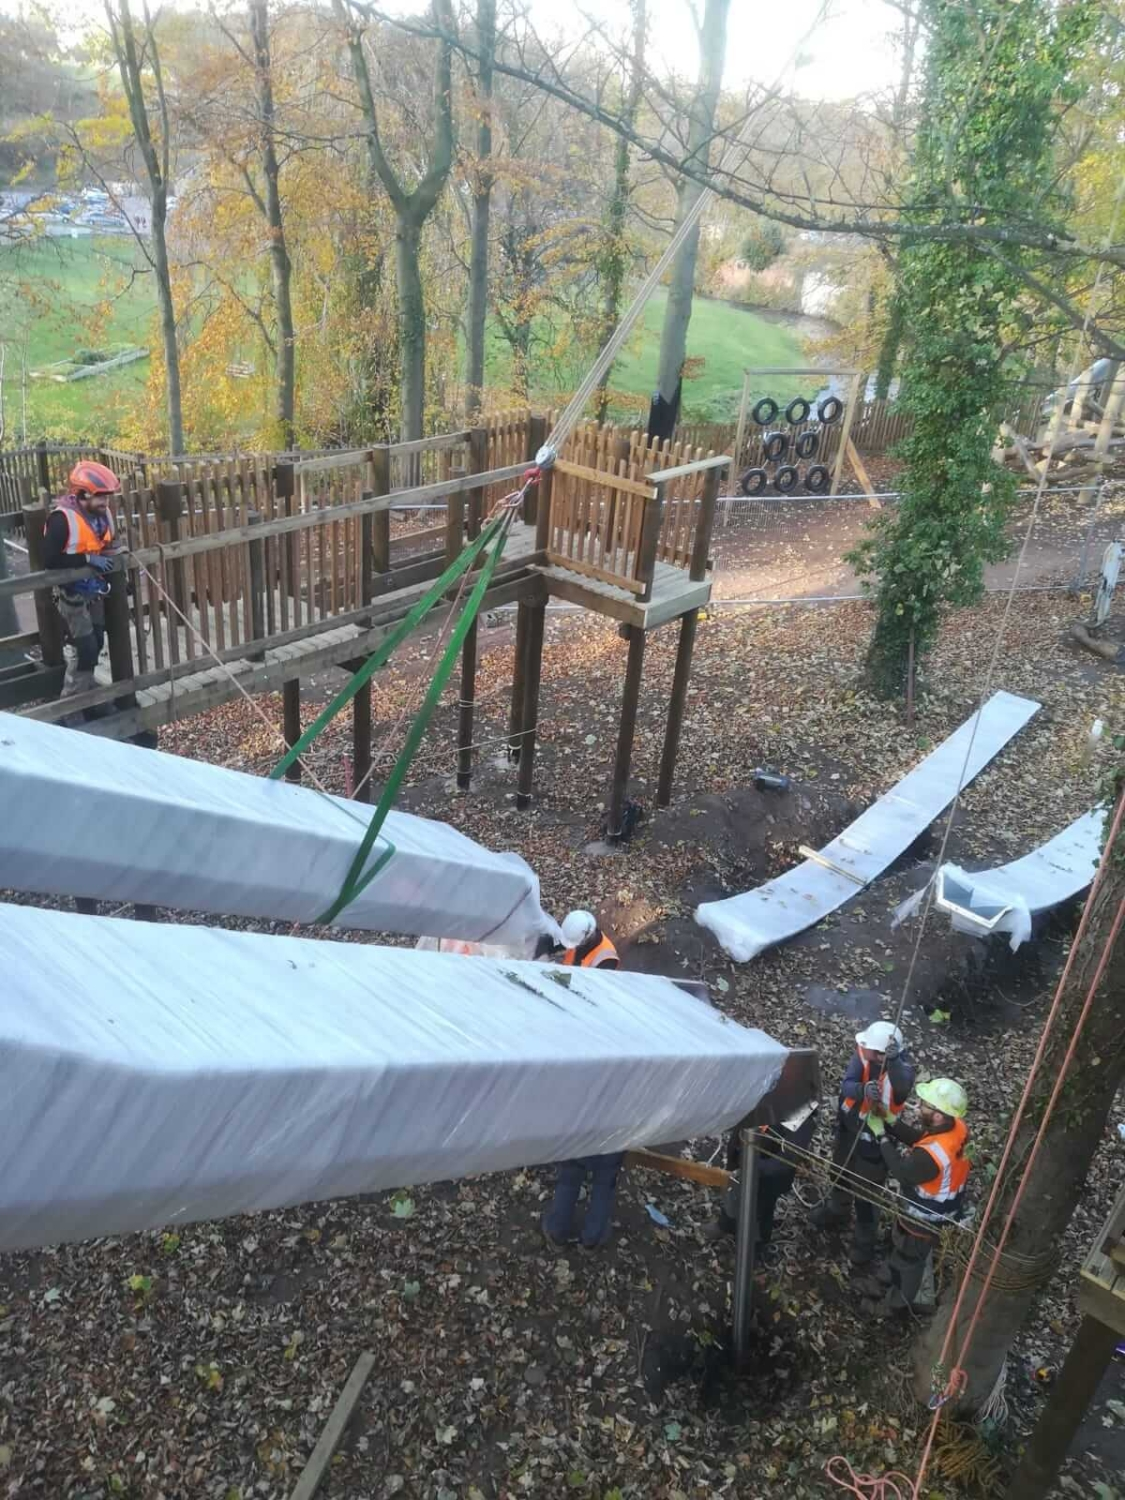 The slide is being installed at Dalkeith Country park